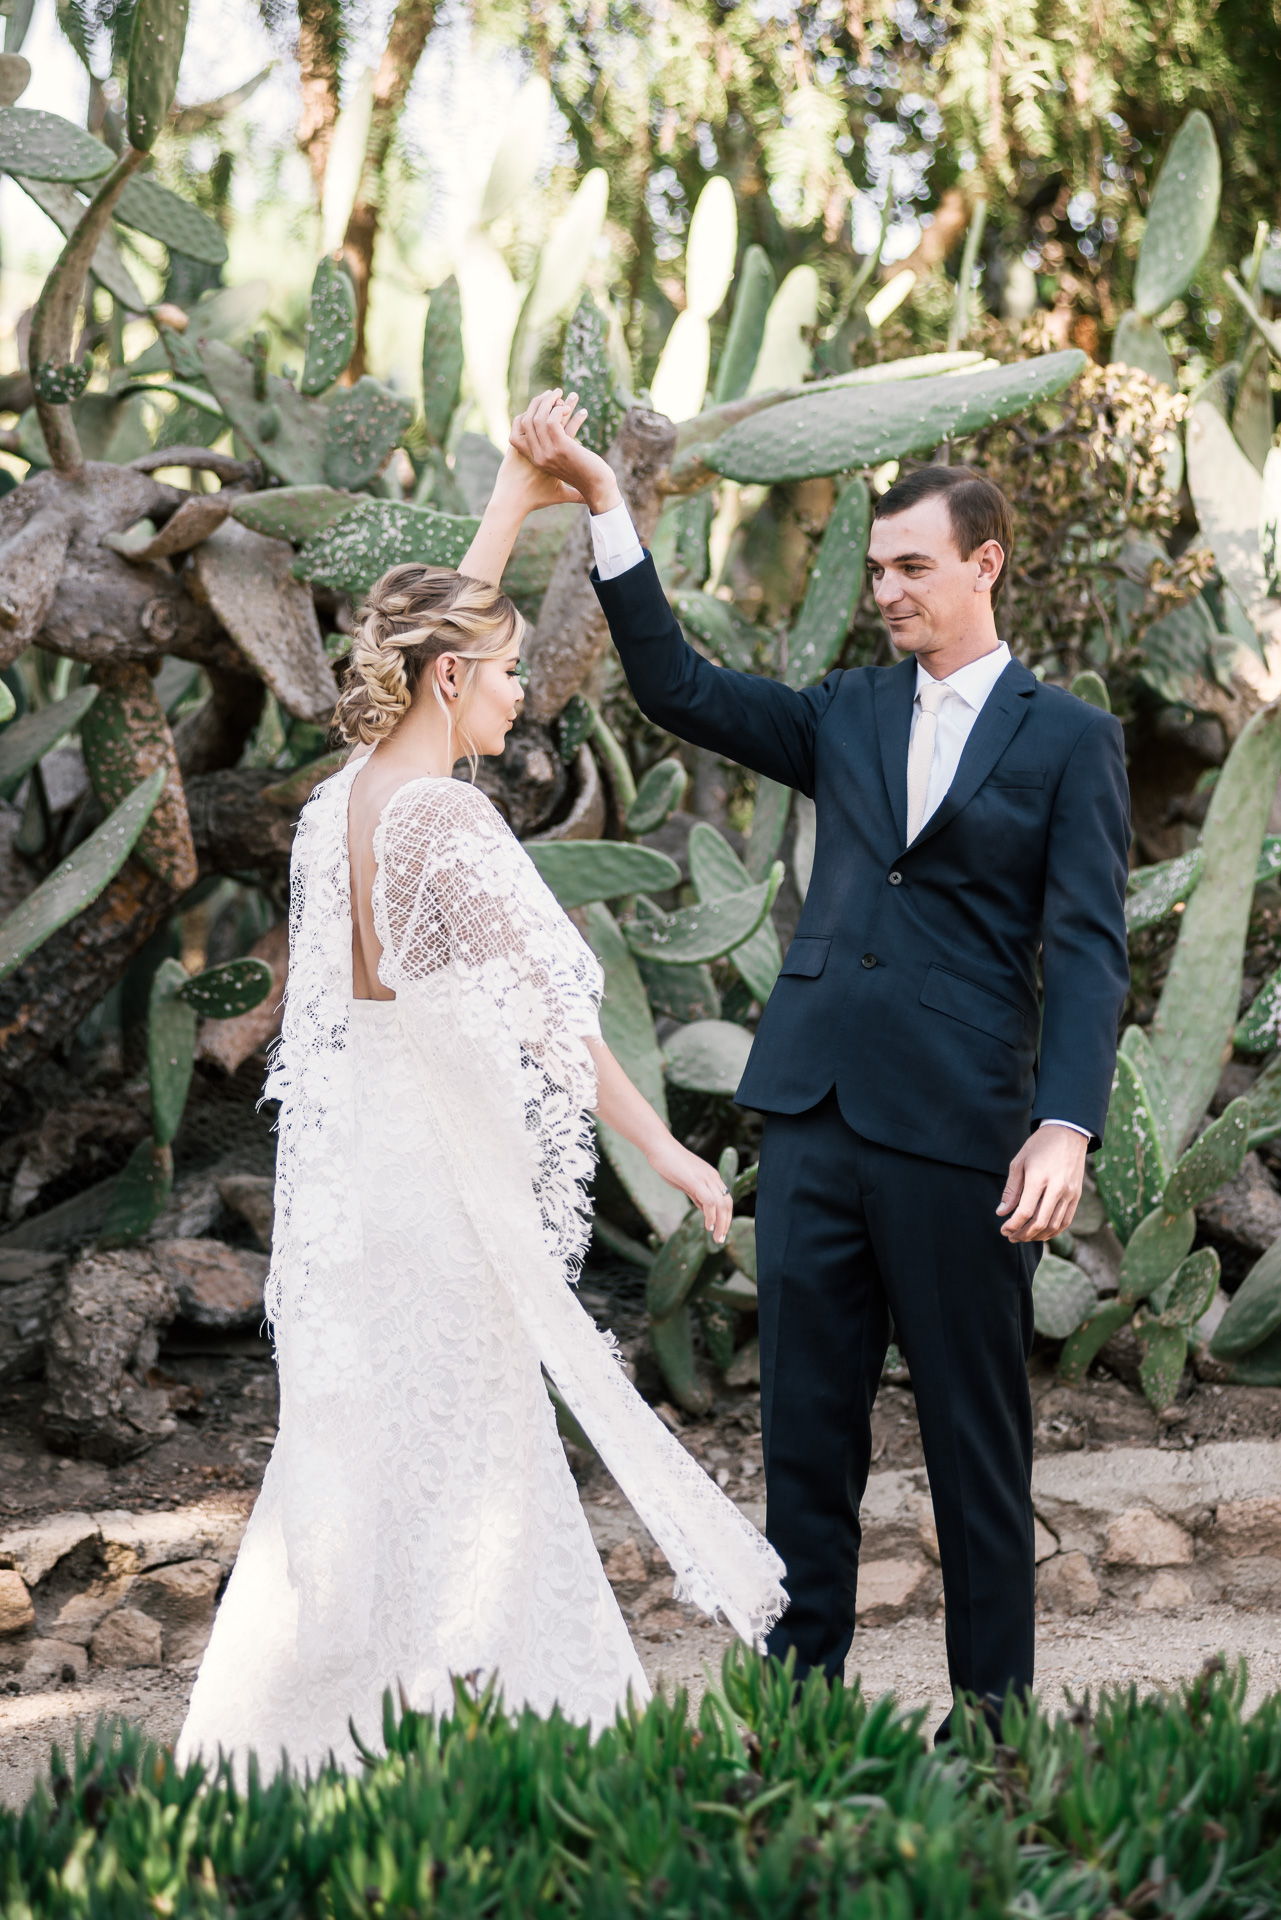 Groom gives his bride a twirl to showcase her dress captured by photographer during romantic wedding at the historic Leo Carrillo Ranch in Carlsbad California